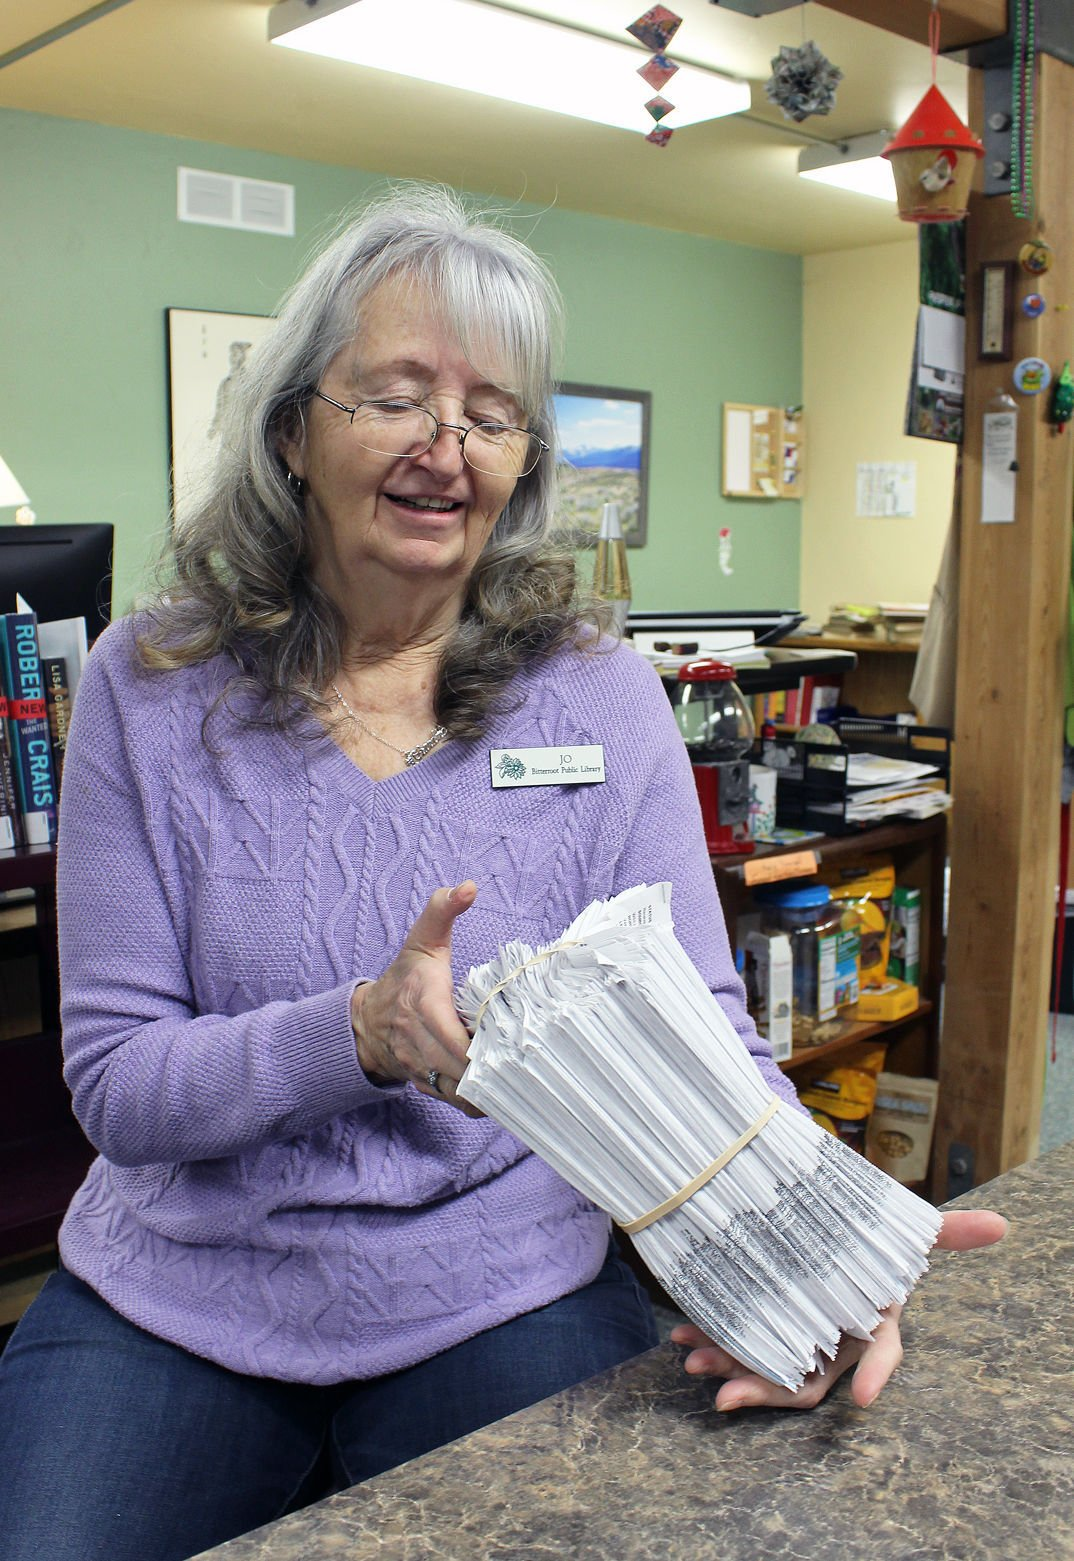 Bitterroot library staff processes positive changes | Local